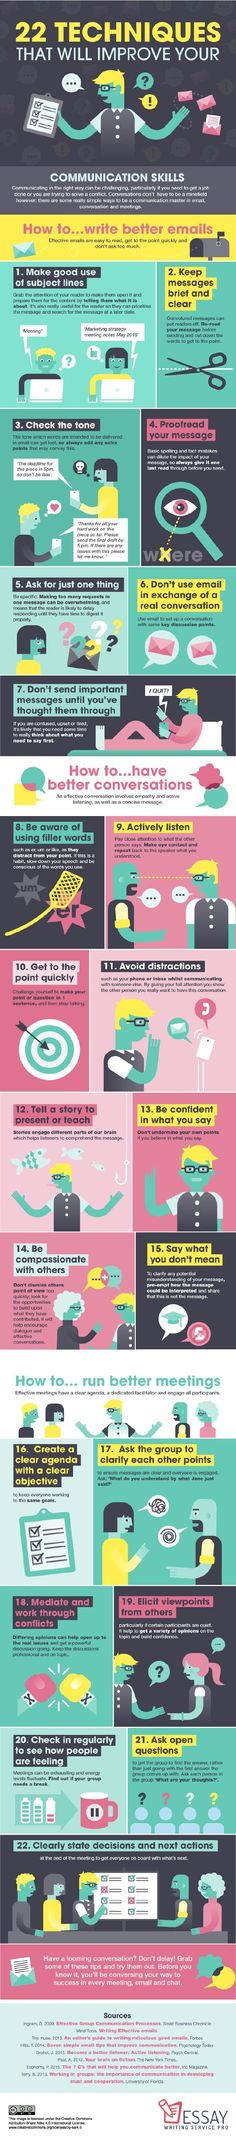 22 Techniques That Will Improve Your Communication Skills